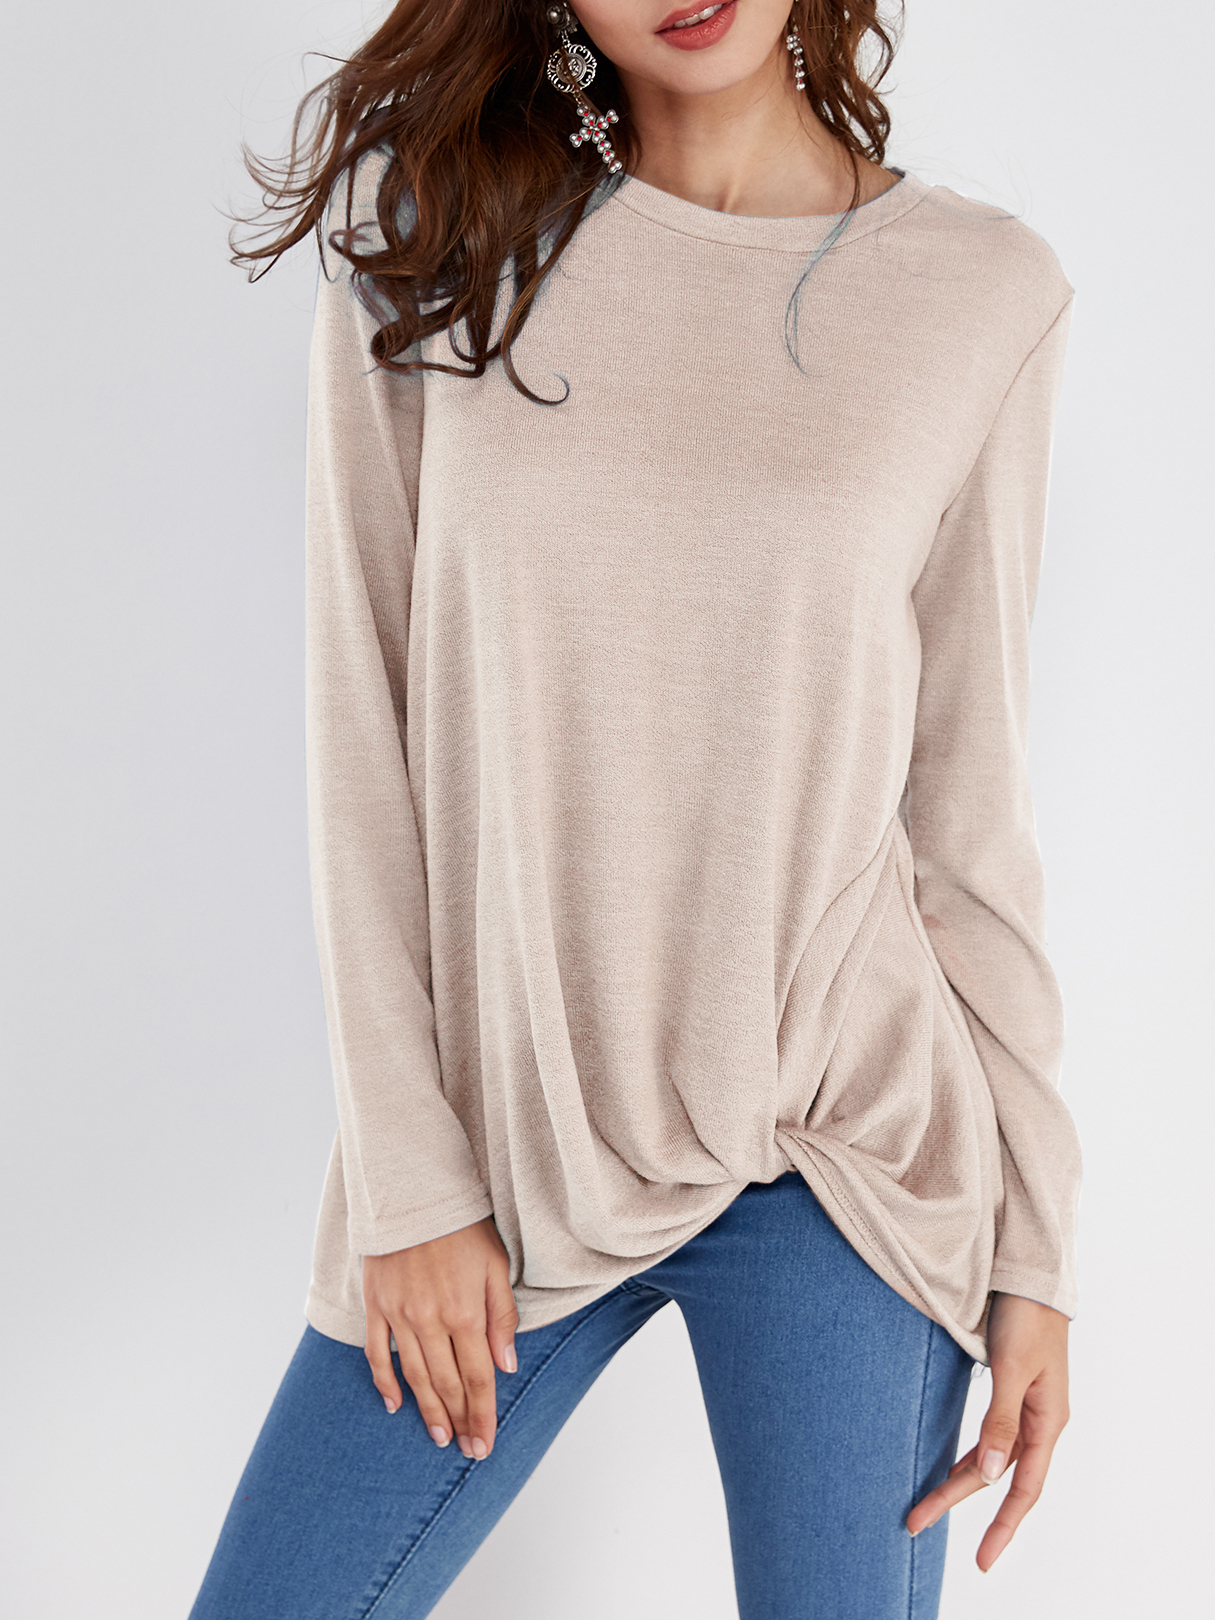 Khaki Pleated Design Round Neck Long Sleeves T-shirts blue pleated design plain crew neck long sleeves t shirts